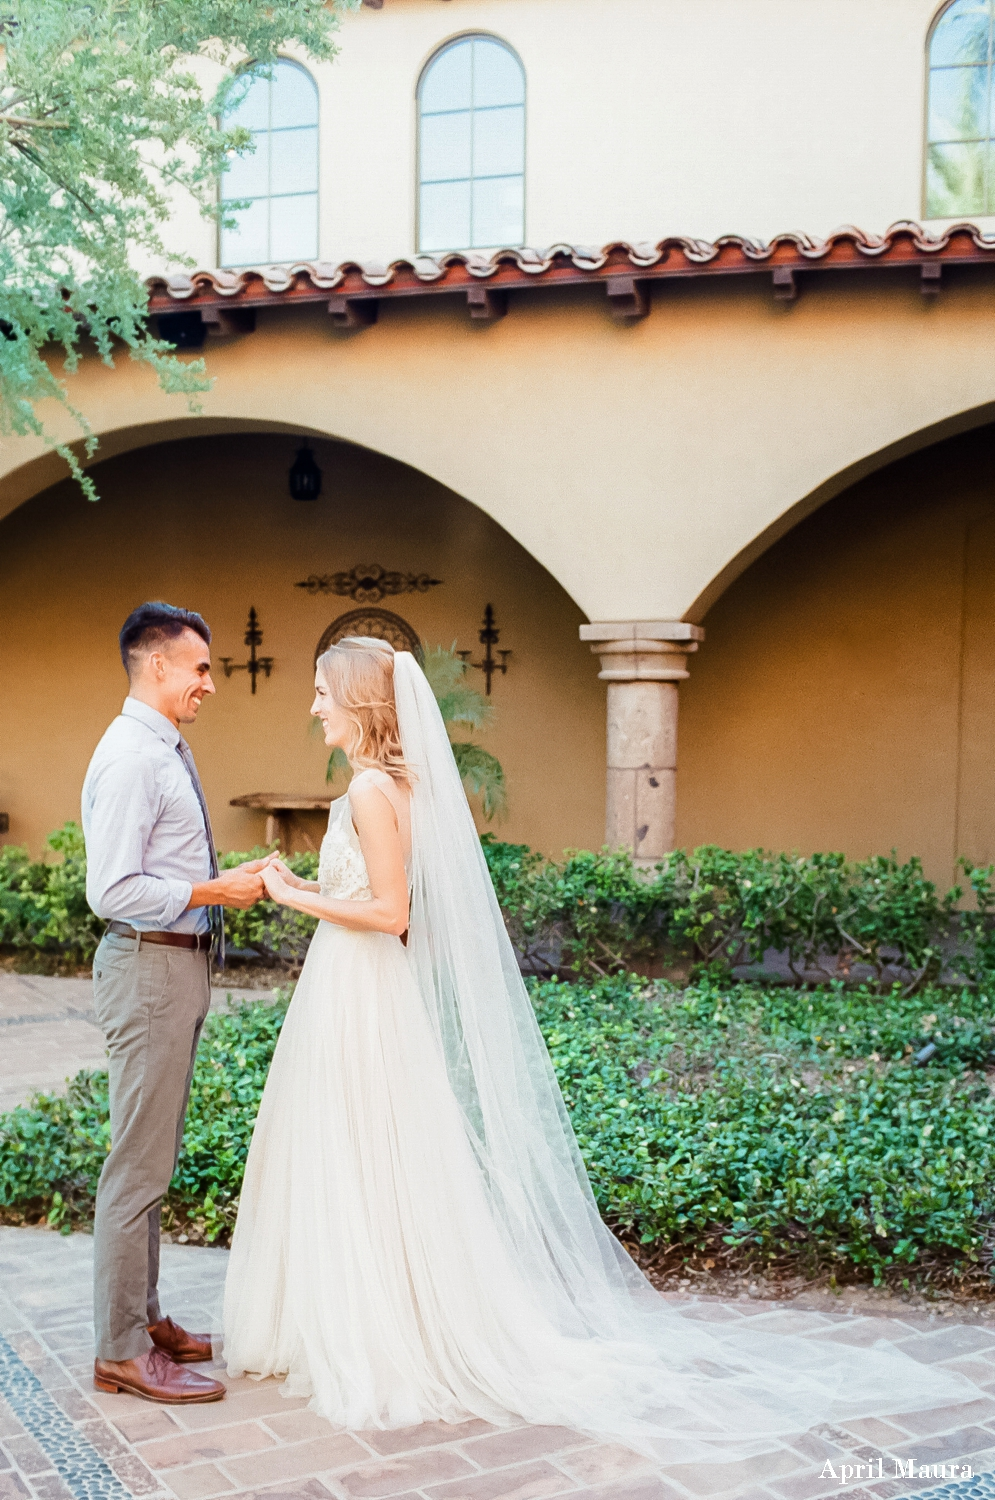 How You Can Personalize Your Wedding Vows